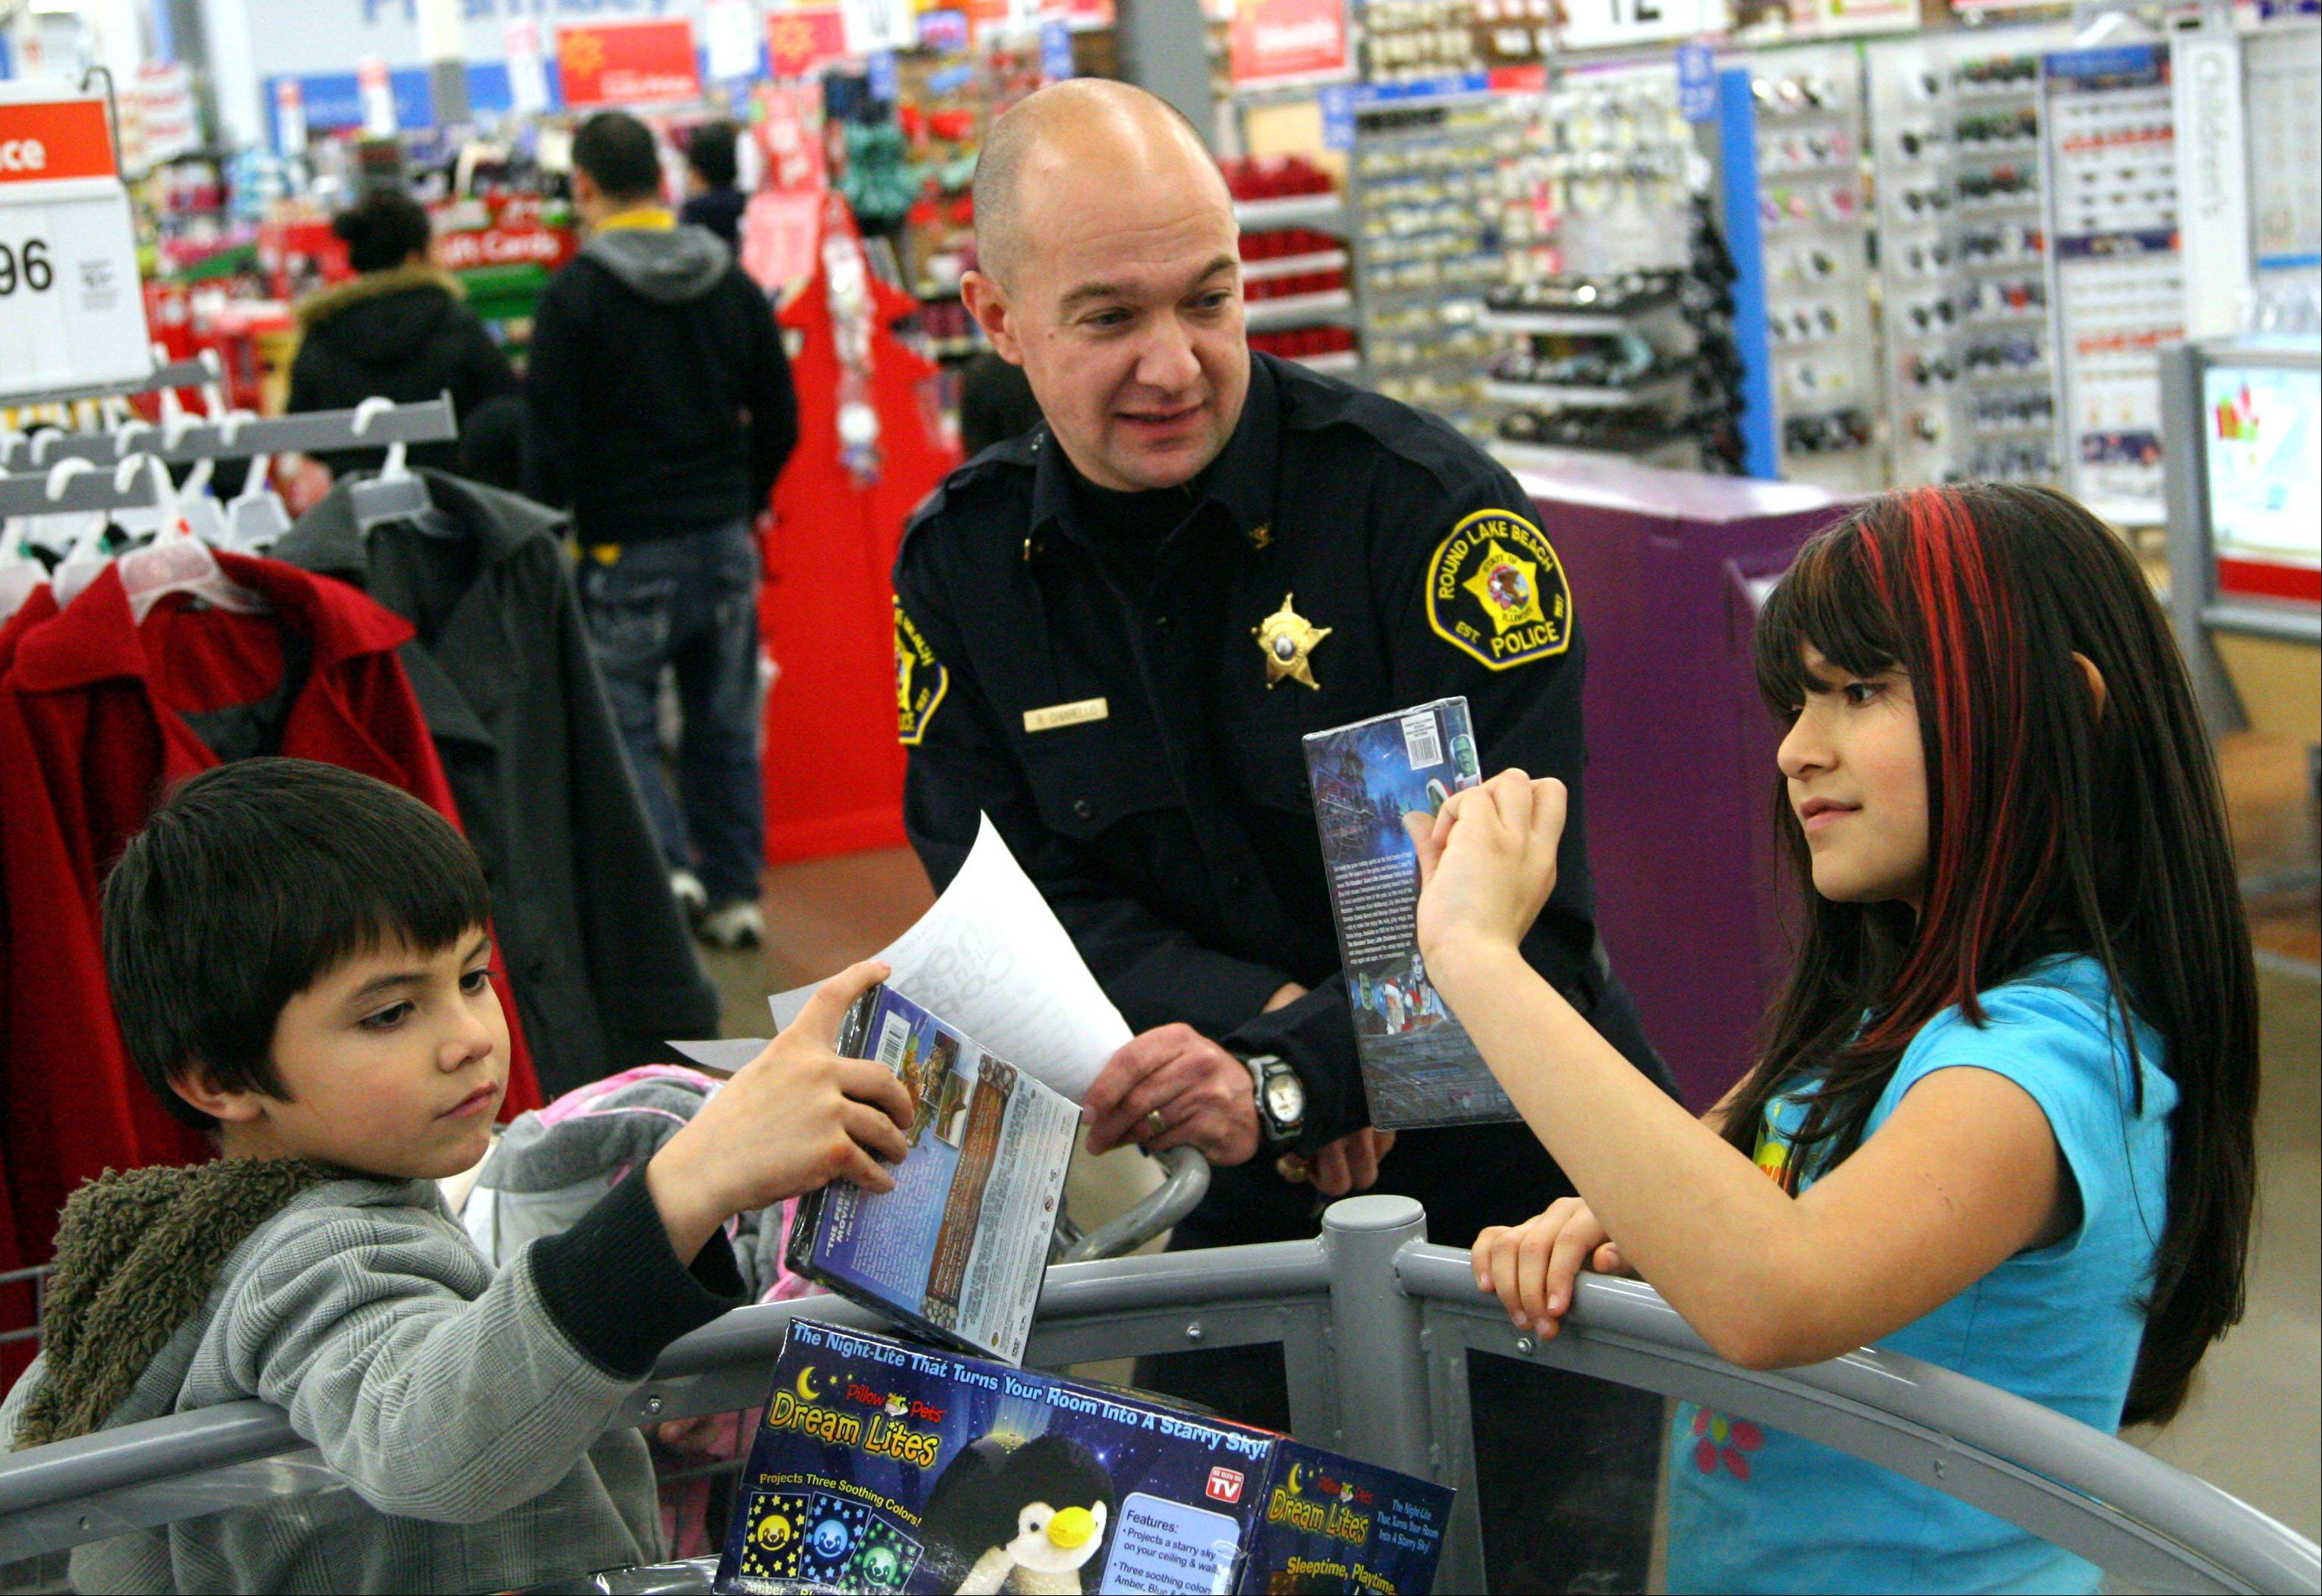 Round Lake Beach Deputy Police Chief Richard Chiarello helps 9-year-old Haley Falcon, right, and her brother Andrew, 8, select DVDs during the Shop with a Cop program. Round Lake Park police hosted the event for the 17th consecutive year.